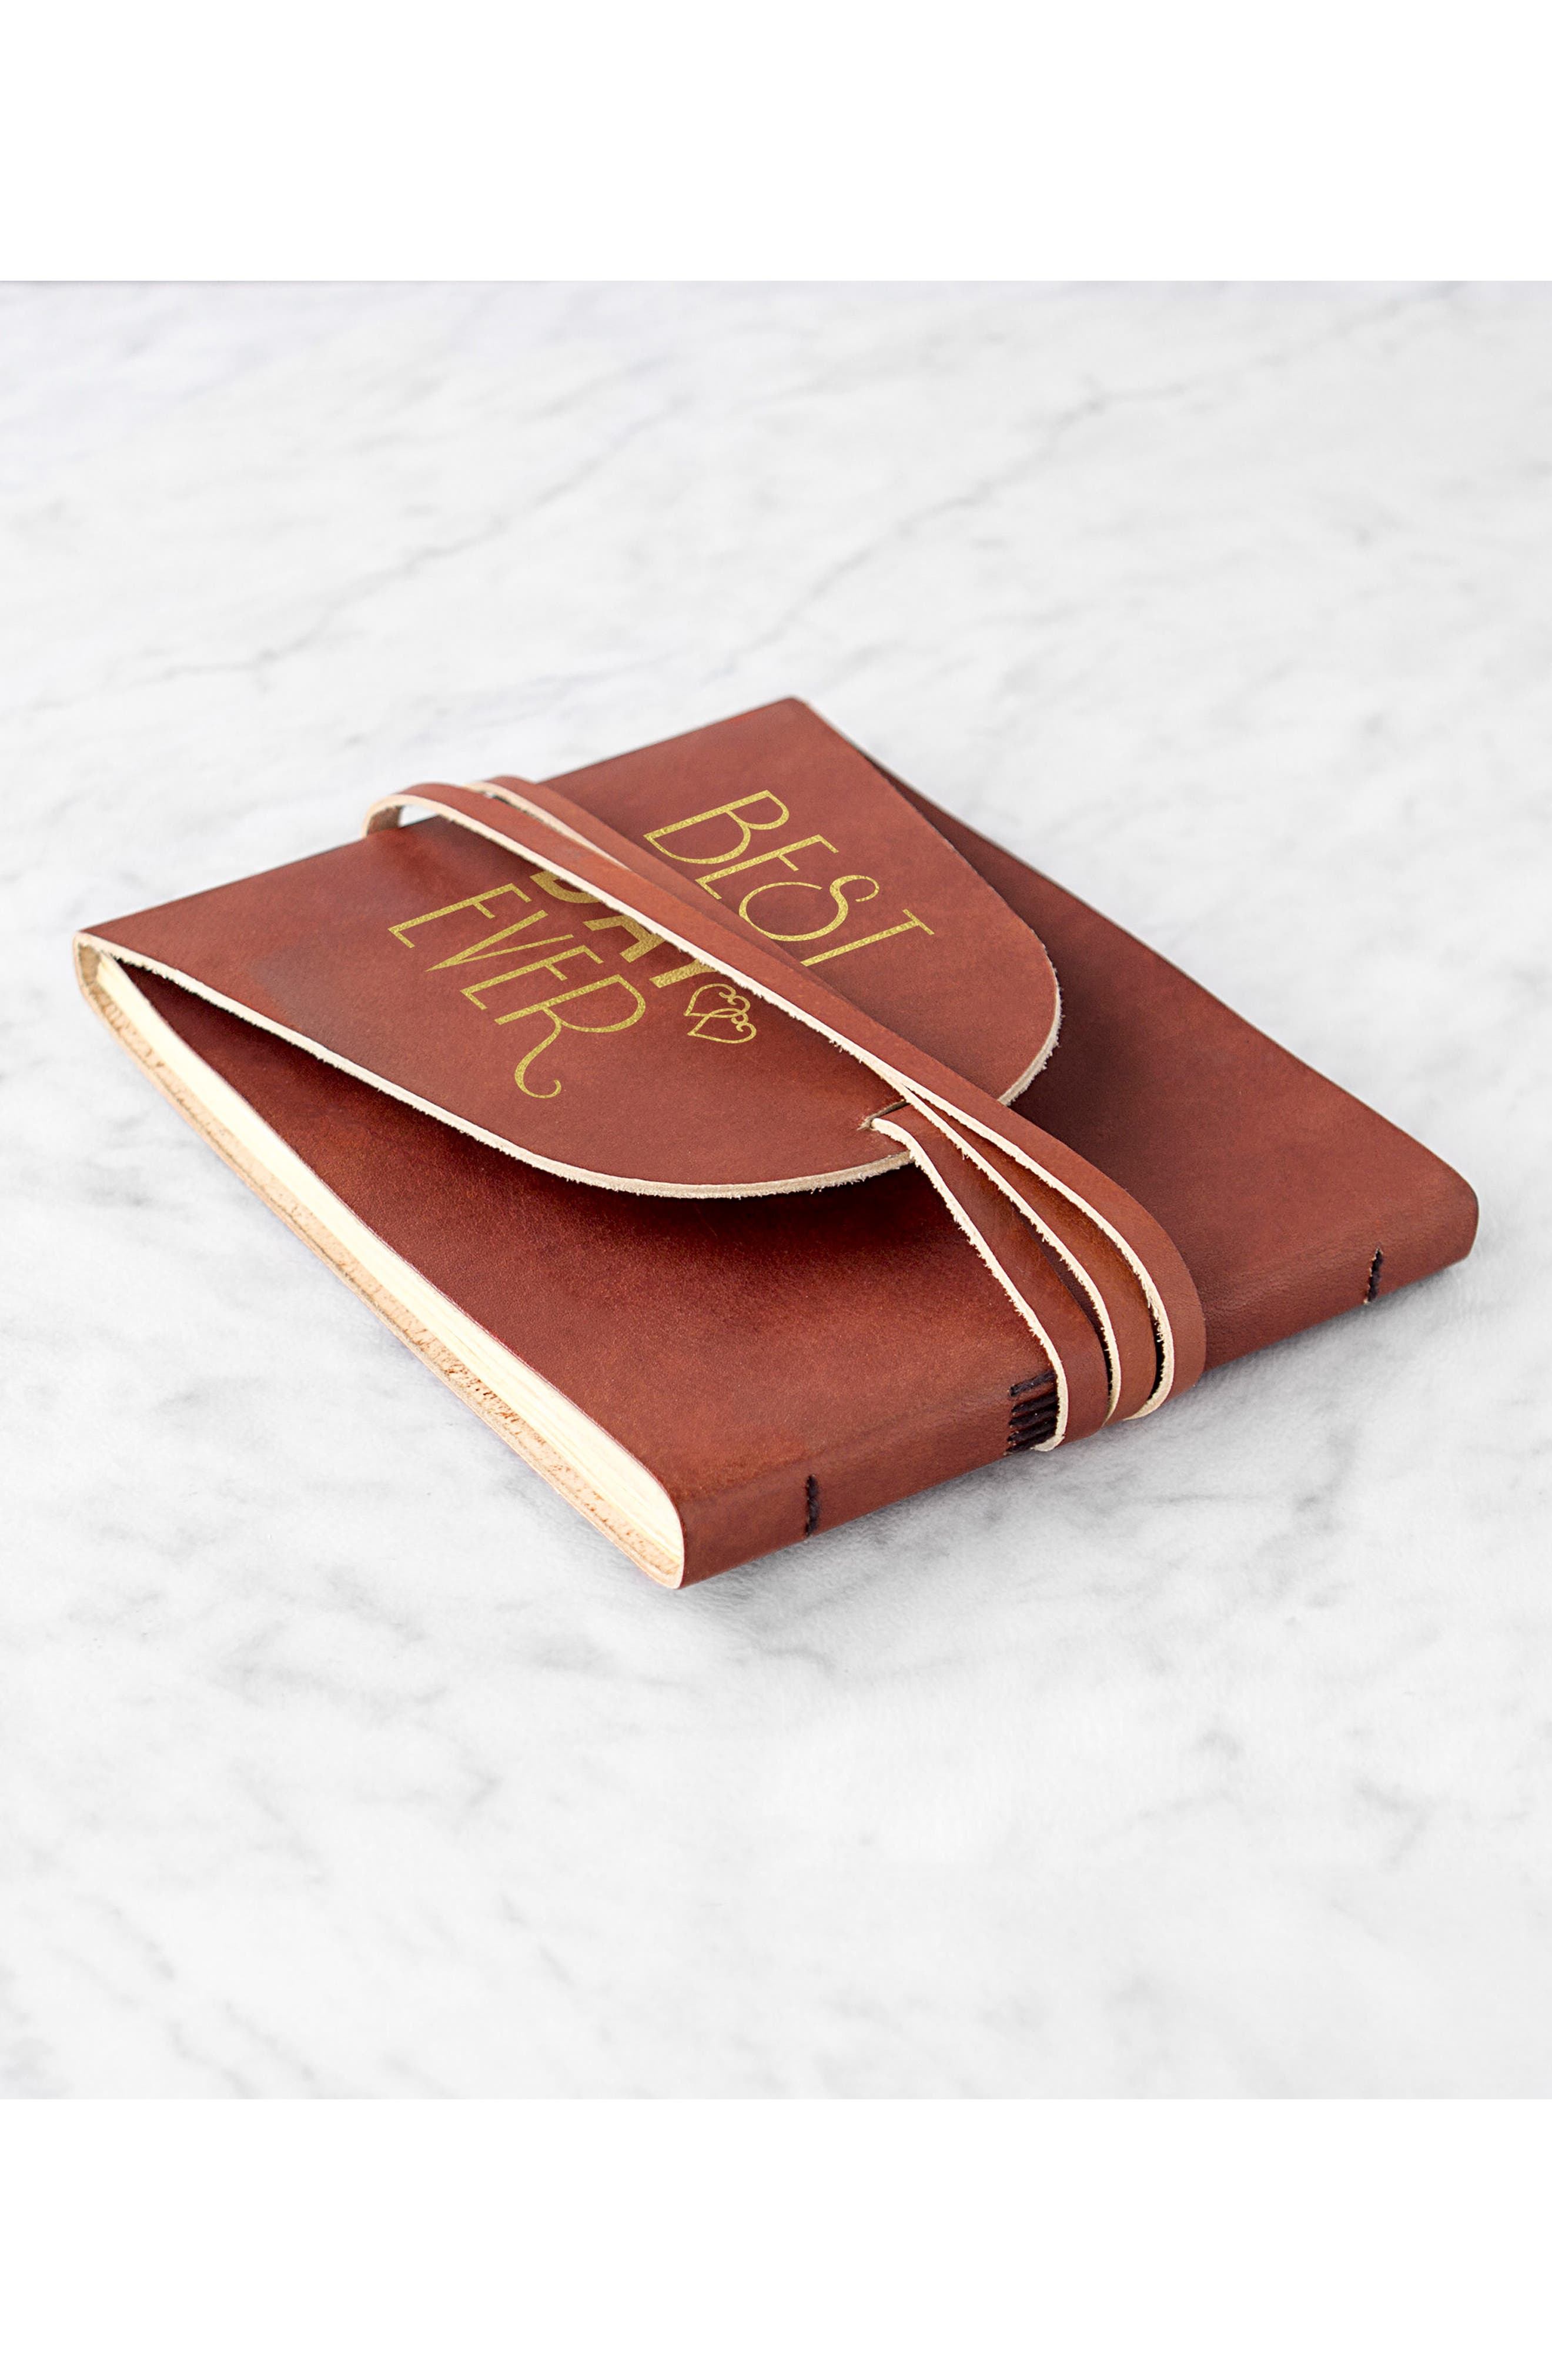 Best Day Ever Leather Guest Book,                             Alternate thumbnail 13, color,                             710